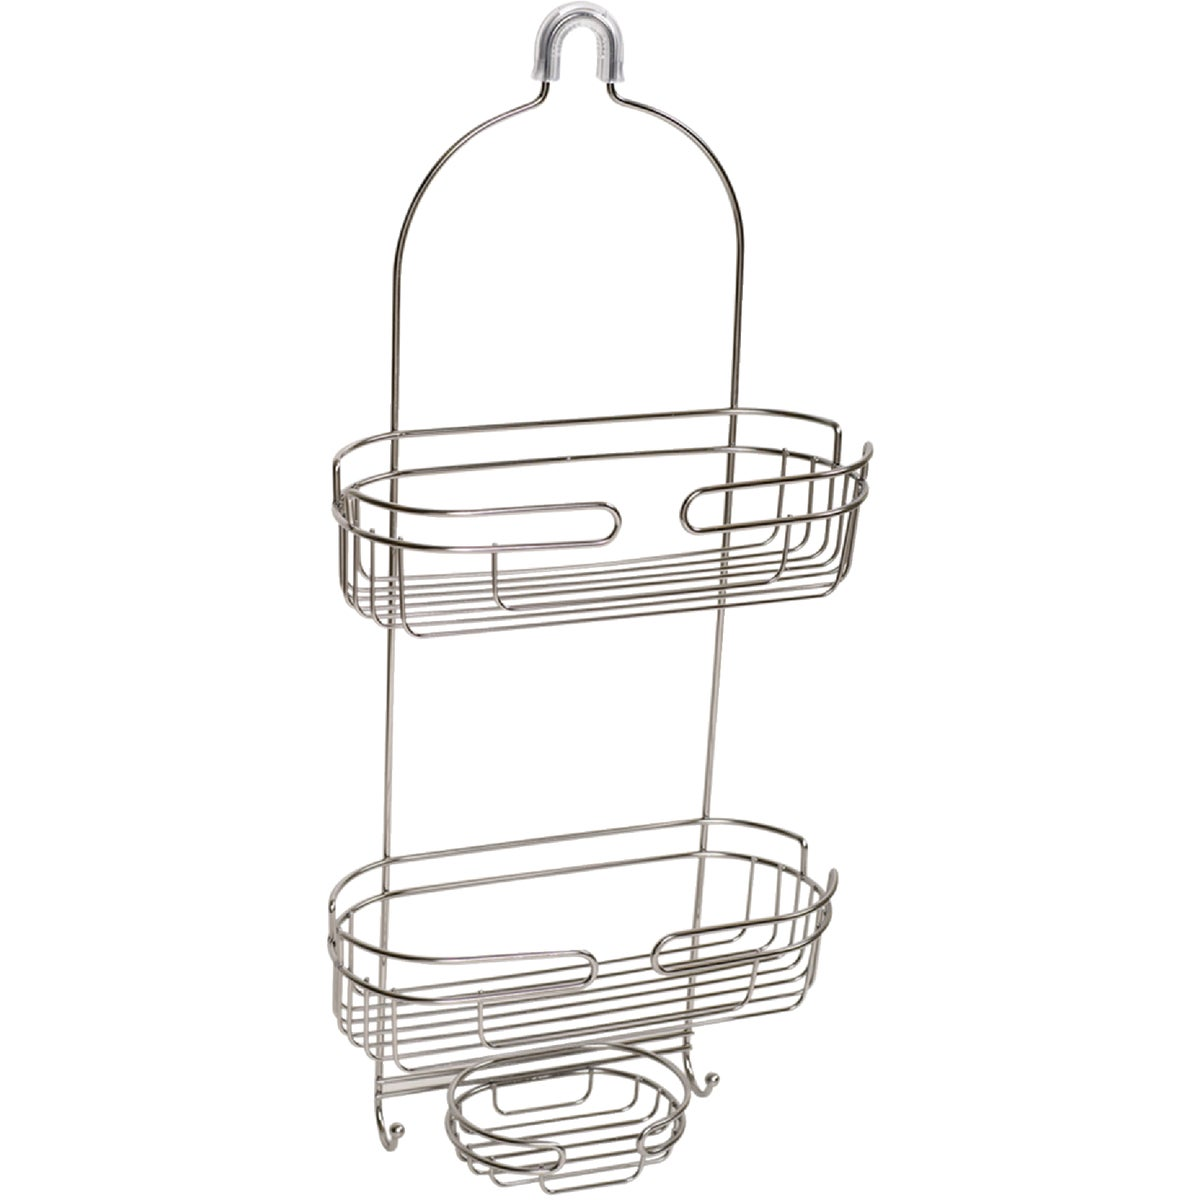 Zenith Prod. Zenith Stainless Steel Basket Shower Caddy at Sears.com